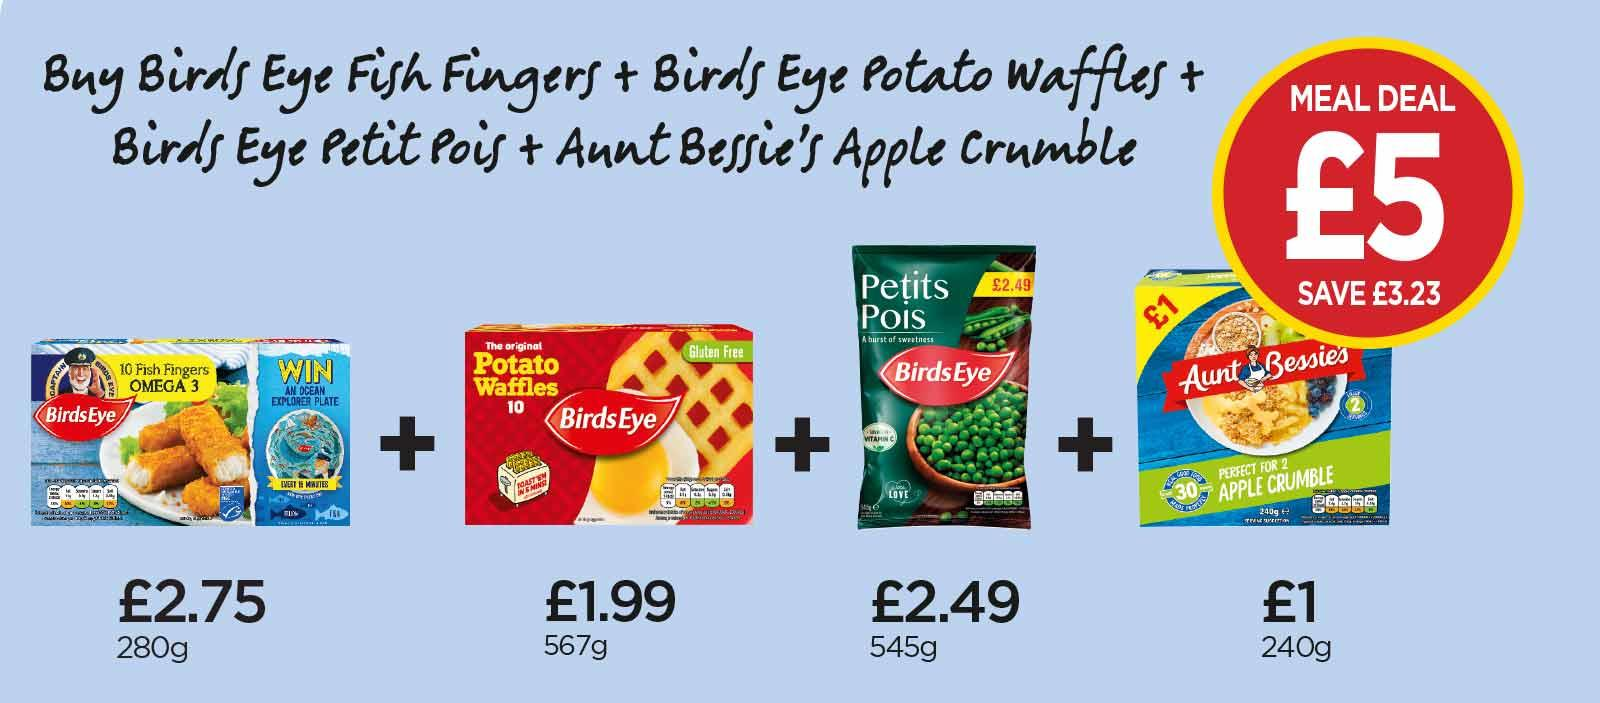 FROZEN MEAL DEAL: BirdsEye 10 Potato Waffles, BirdsEye 10 Omega 3 Fish Fingers, Aunt Bessie's Perfect for 2 Apple Crumble, BirdsEye Petit Pois - £5 at Budgens